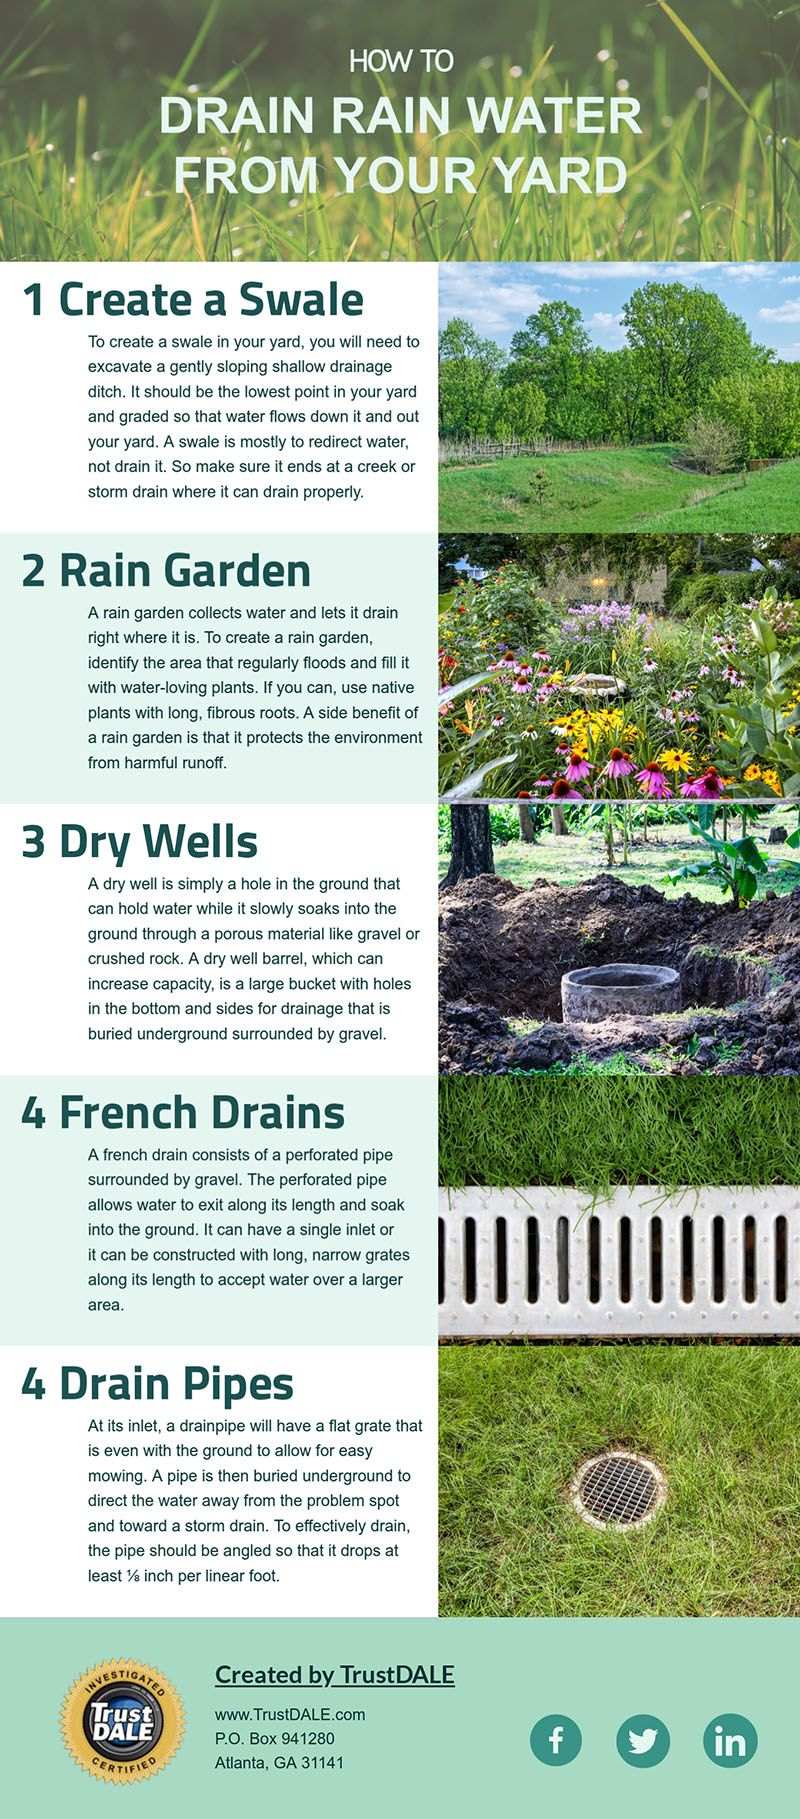 How To Drain Rainwater from Your Yard - TrustDALE Blog ...